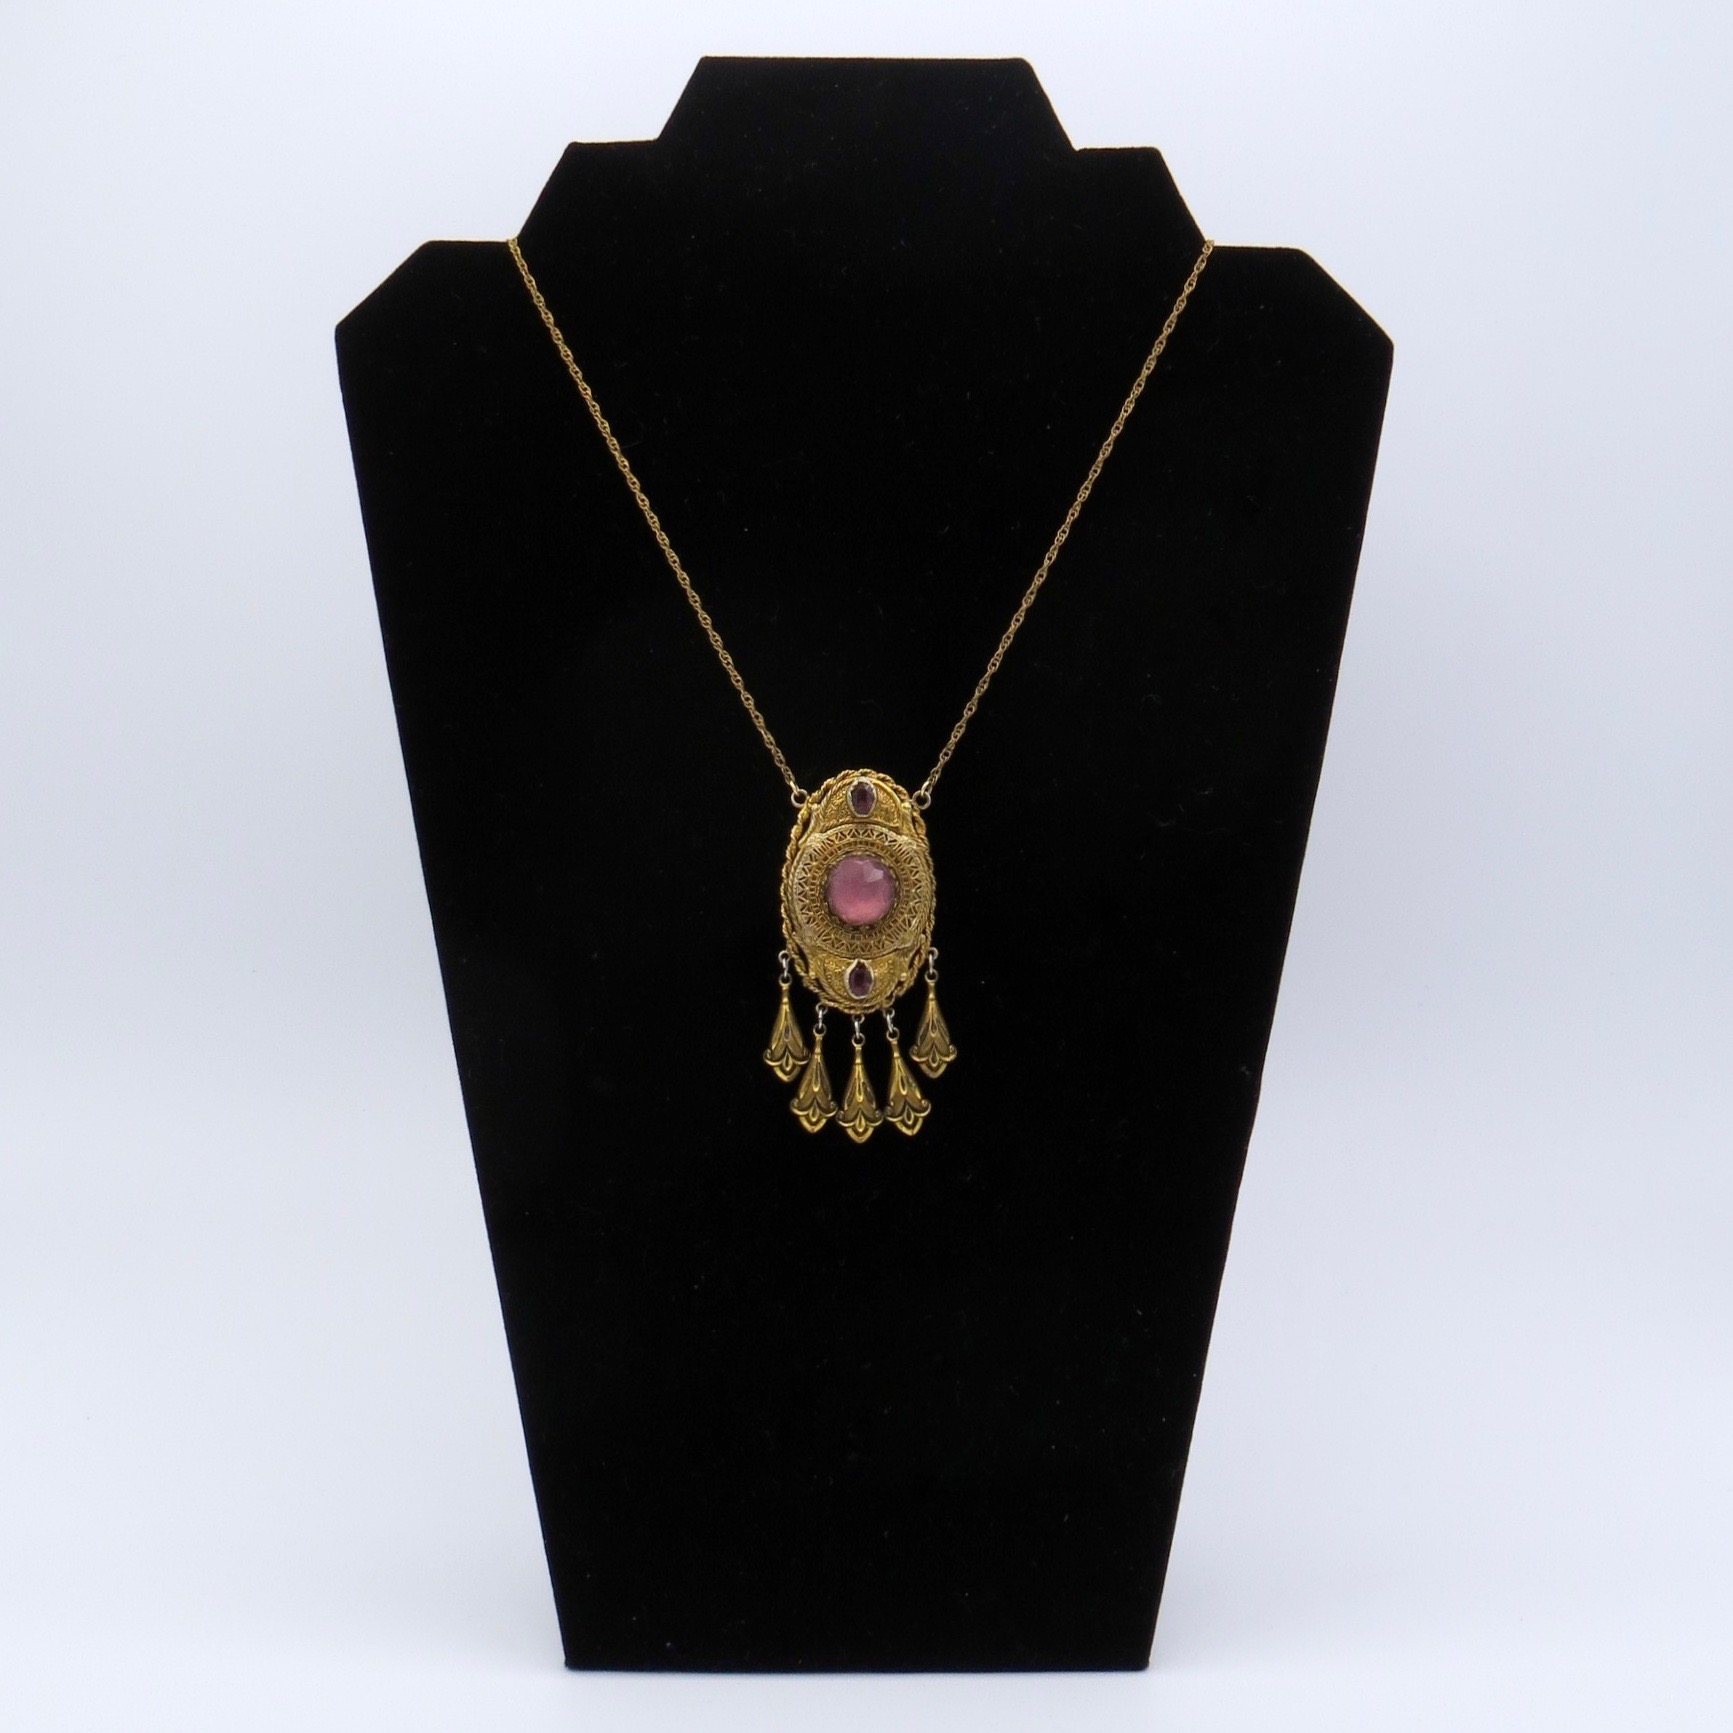 5JN21-vict-style-purple-necklace-c